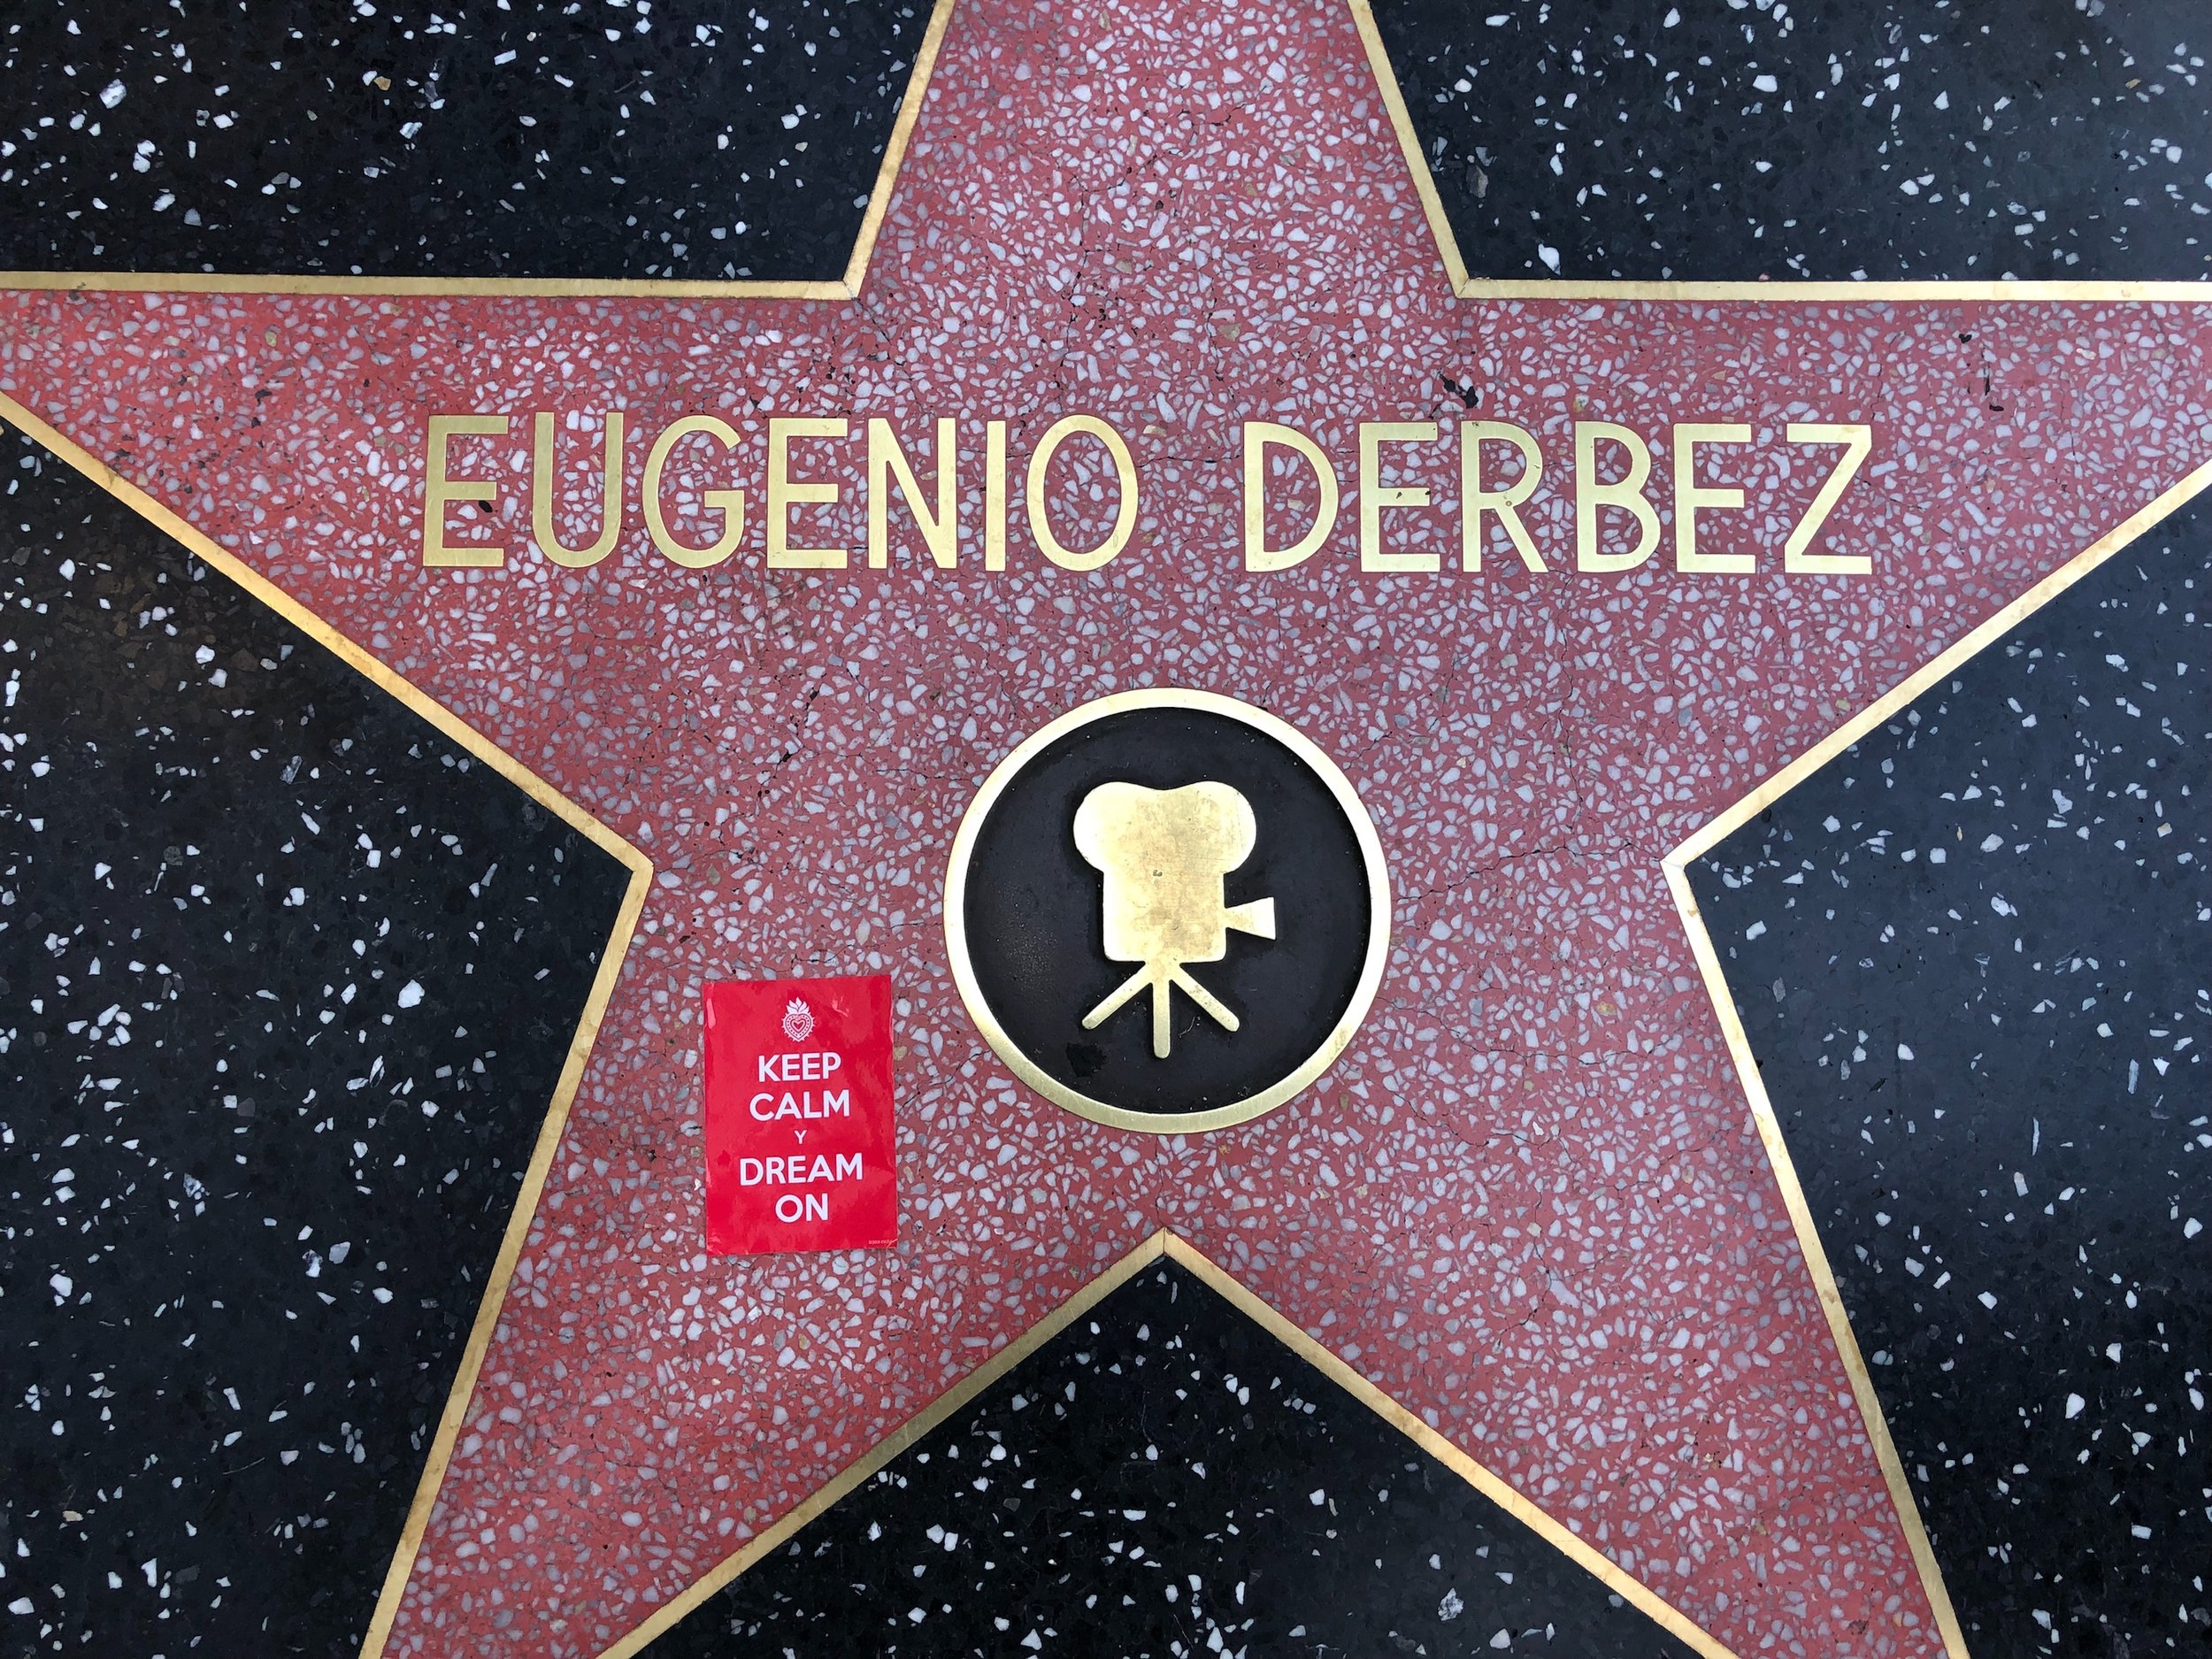 Hollywood Walk of Fame Los Angeles, California  April 23, 2018  Photo by Jesus Rangel  The famed sidewalk on Hollywood Blvd. features the terrazzo and brass stars with names of nearly 3000 prominent celebrities, including a number of Latino stars such as Eugenio Derbez and Sophia Vergara.